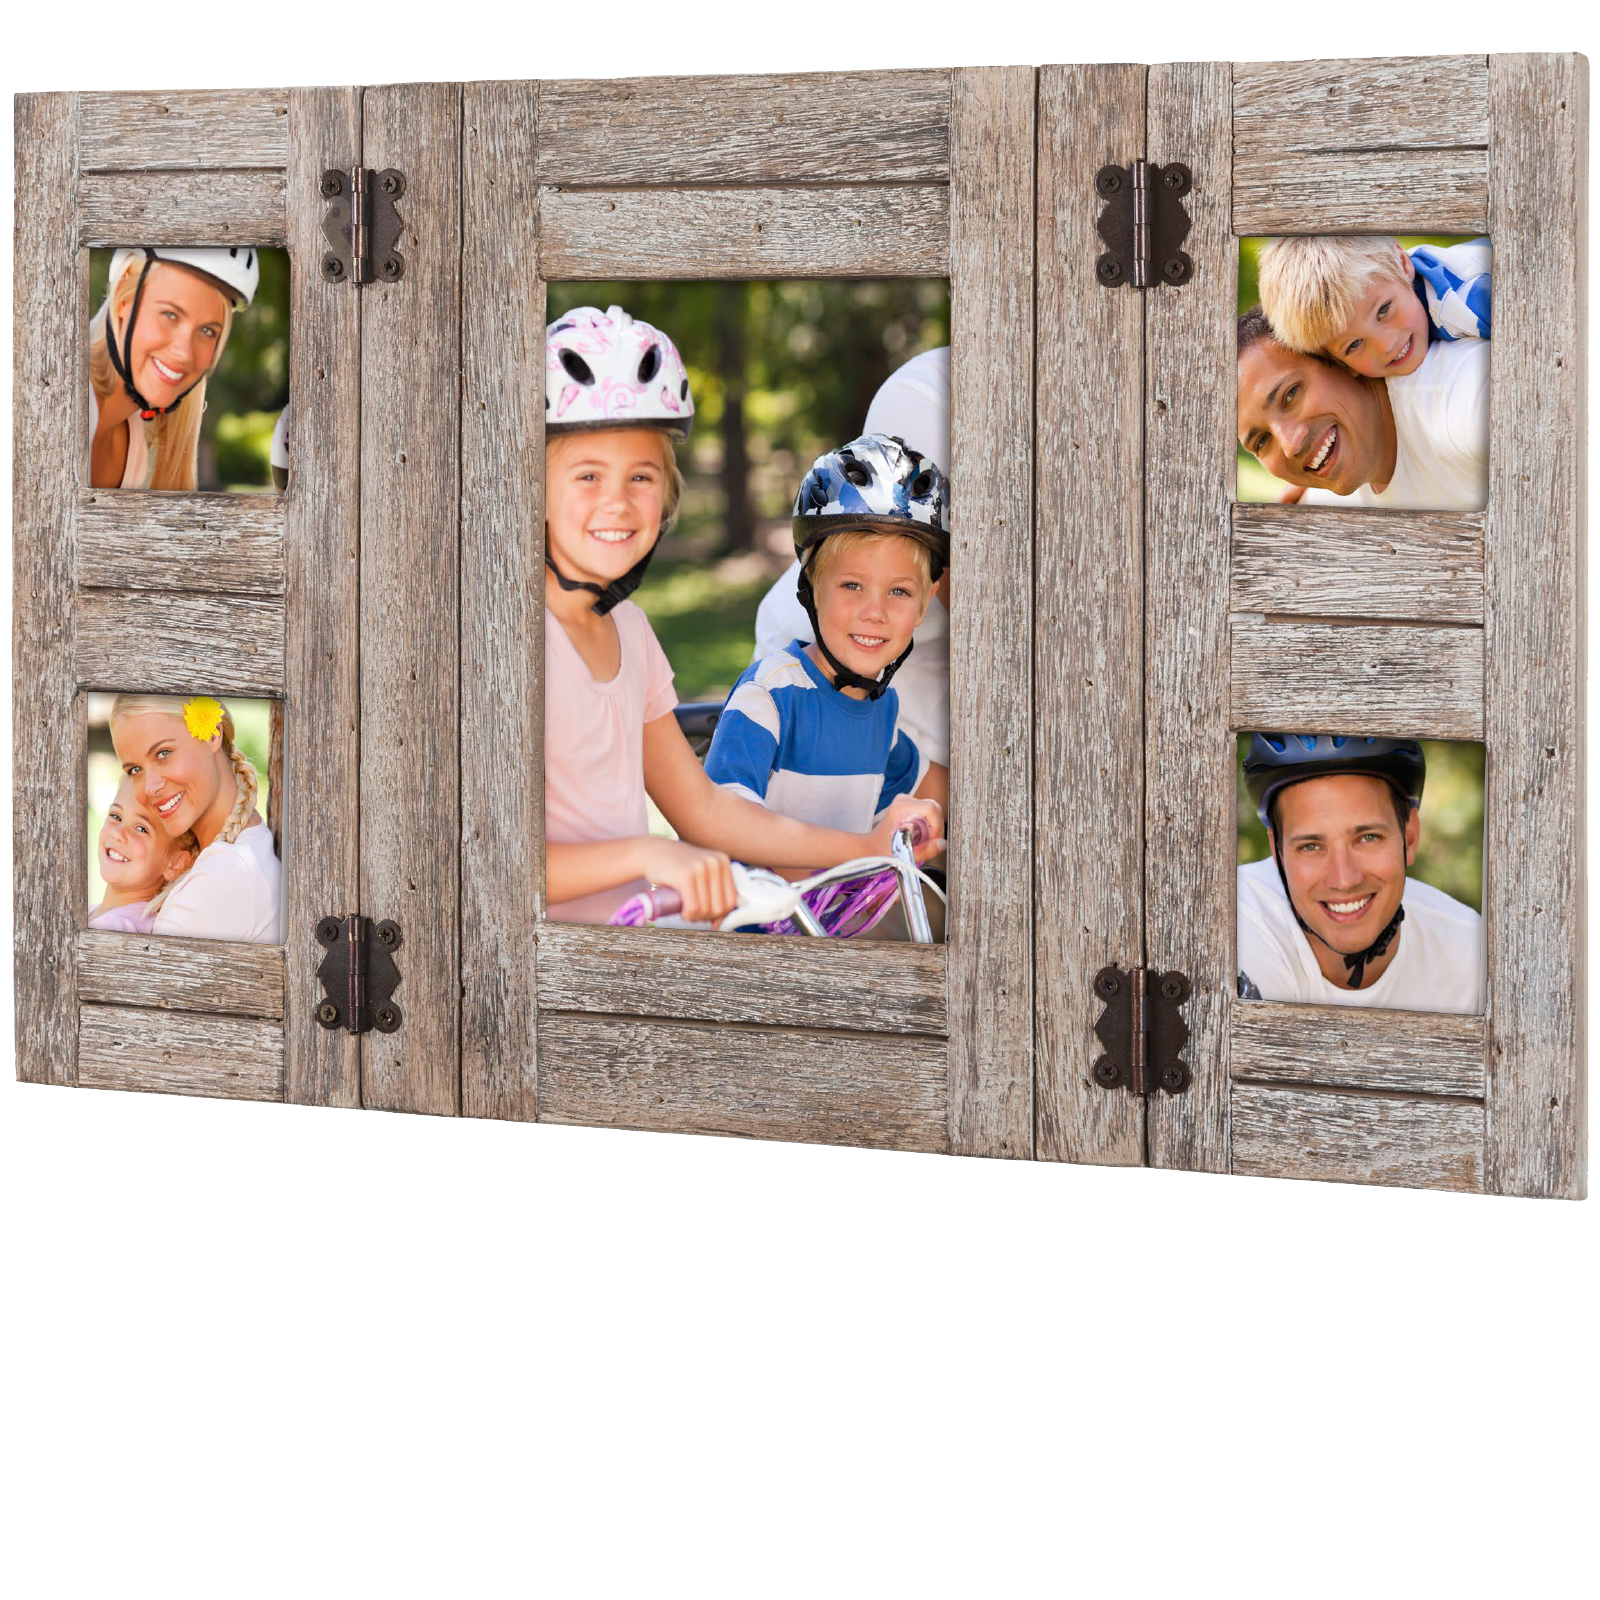 Rustic Distressed Wood Collage Picture Frames Holds 5